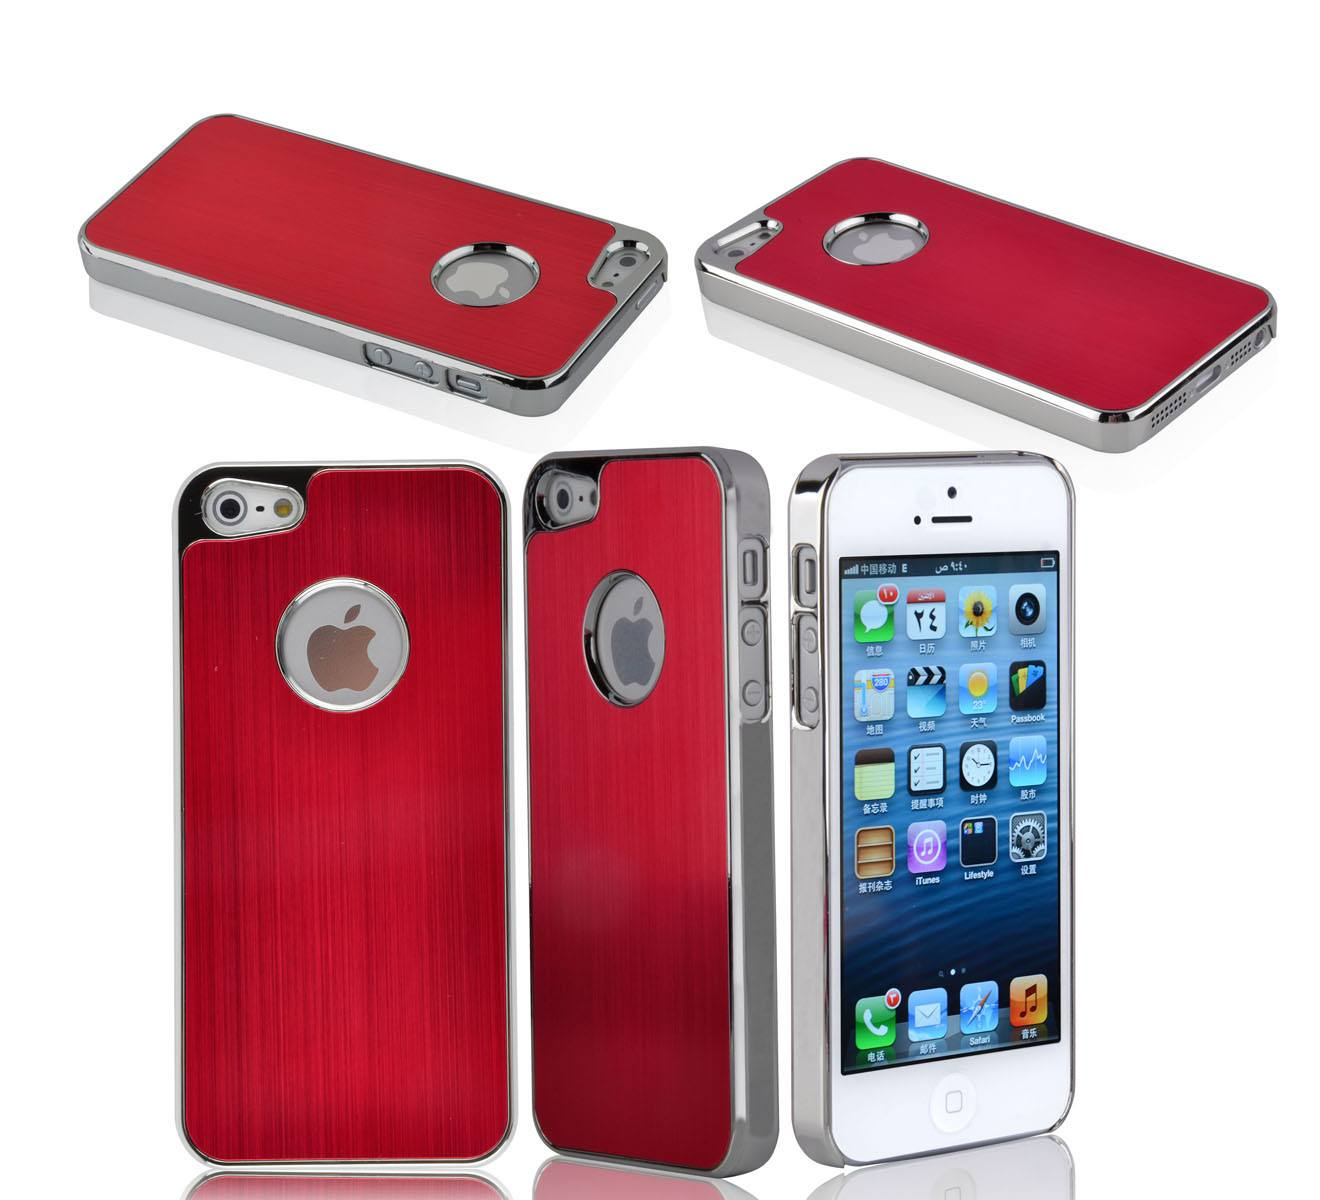 iPhone 5 Premium Brushed Aluminum Case - Red